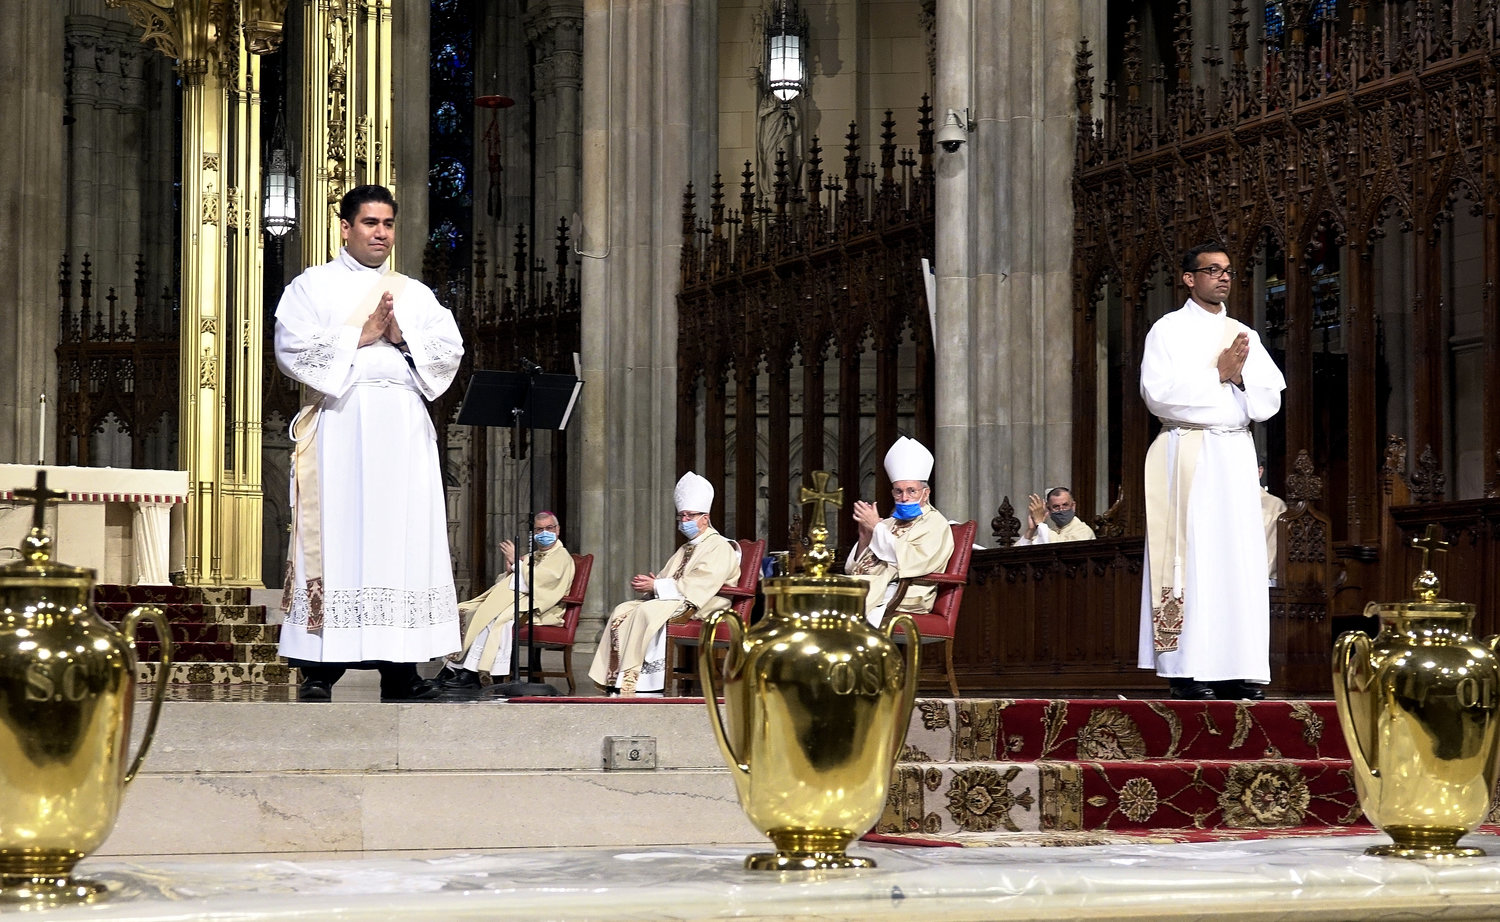 The two newly ordained priests, Father Luis Silva and Father Roland Pereira, M.Id., receive the applause of the congregation at St. Patrick's Cathedral.